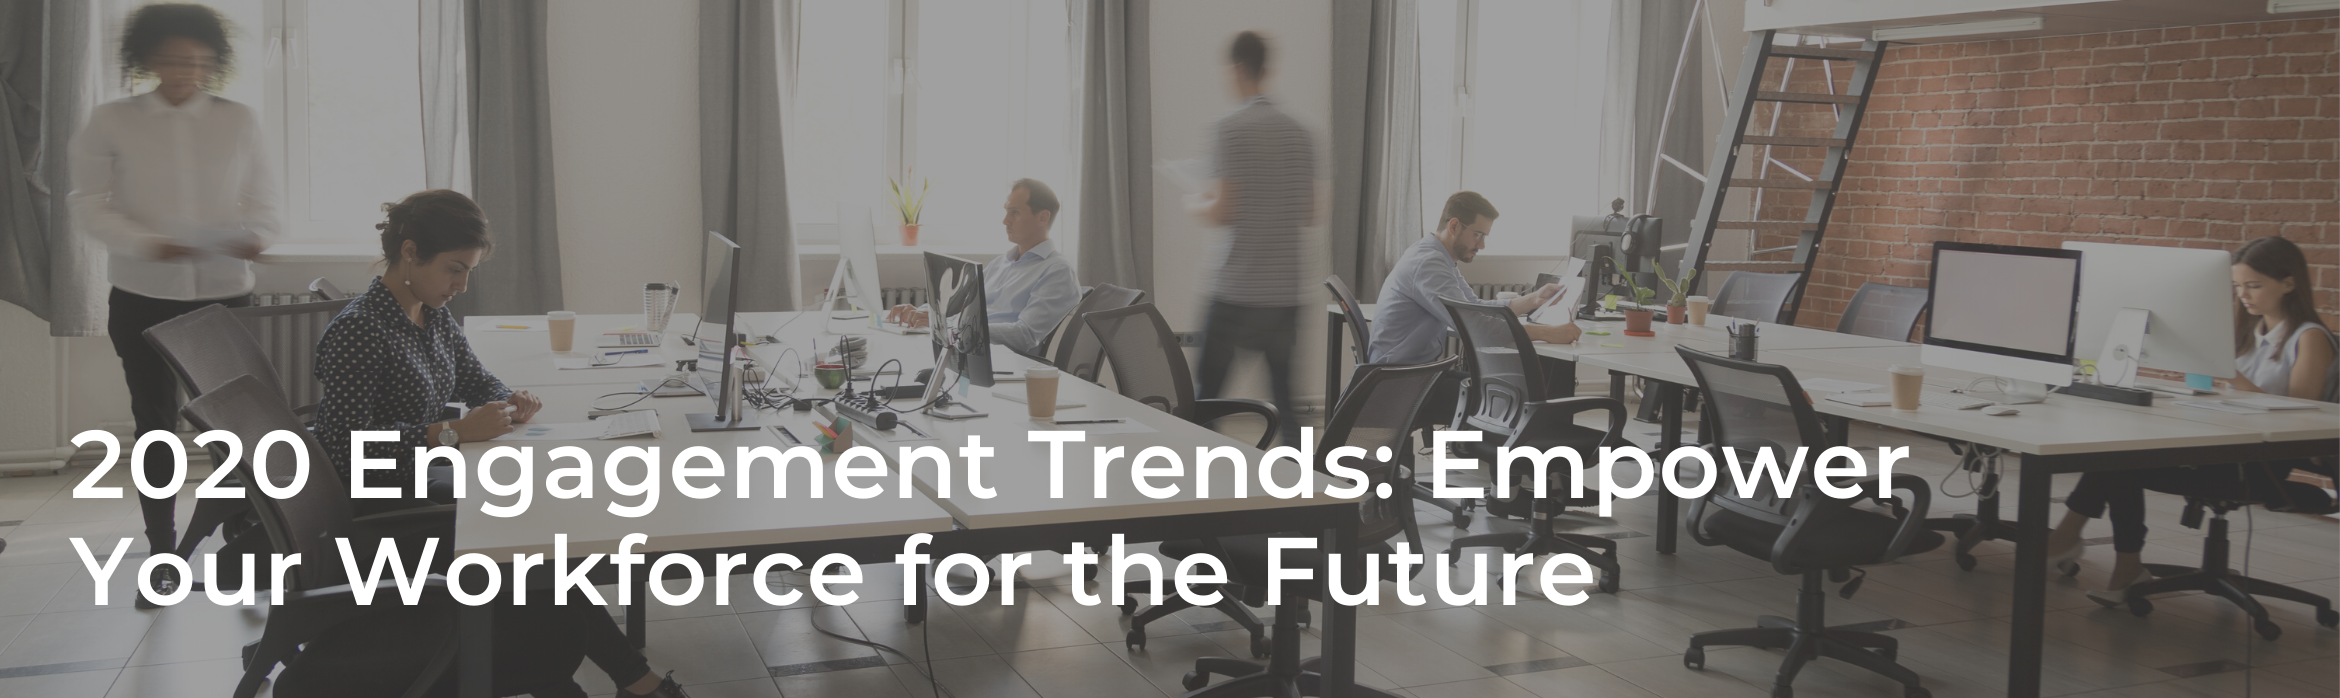 2020 Engagement Trends: Empower Your Workforce for the Future